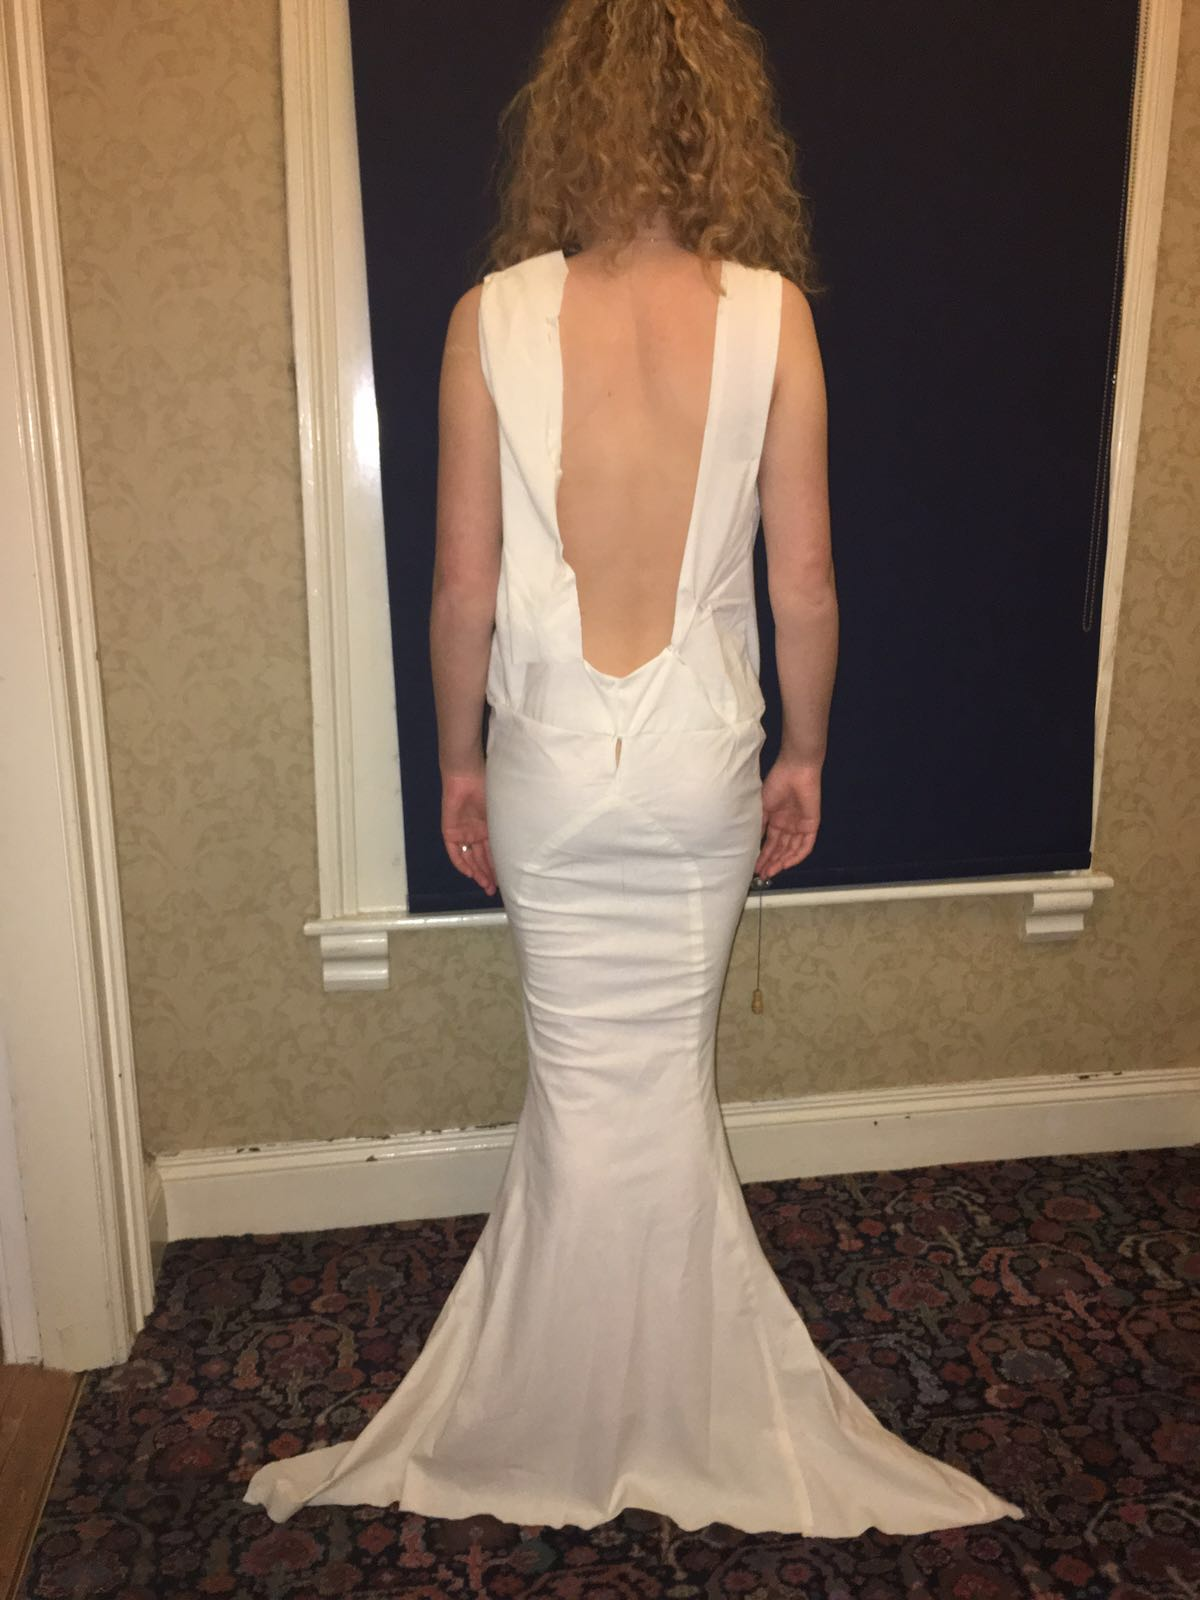 The first toile from the back